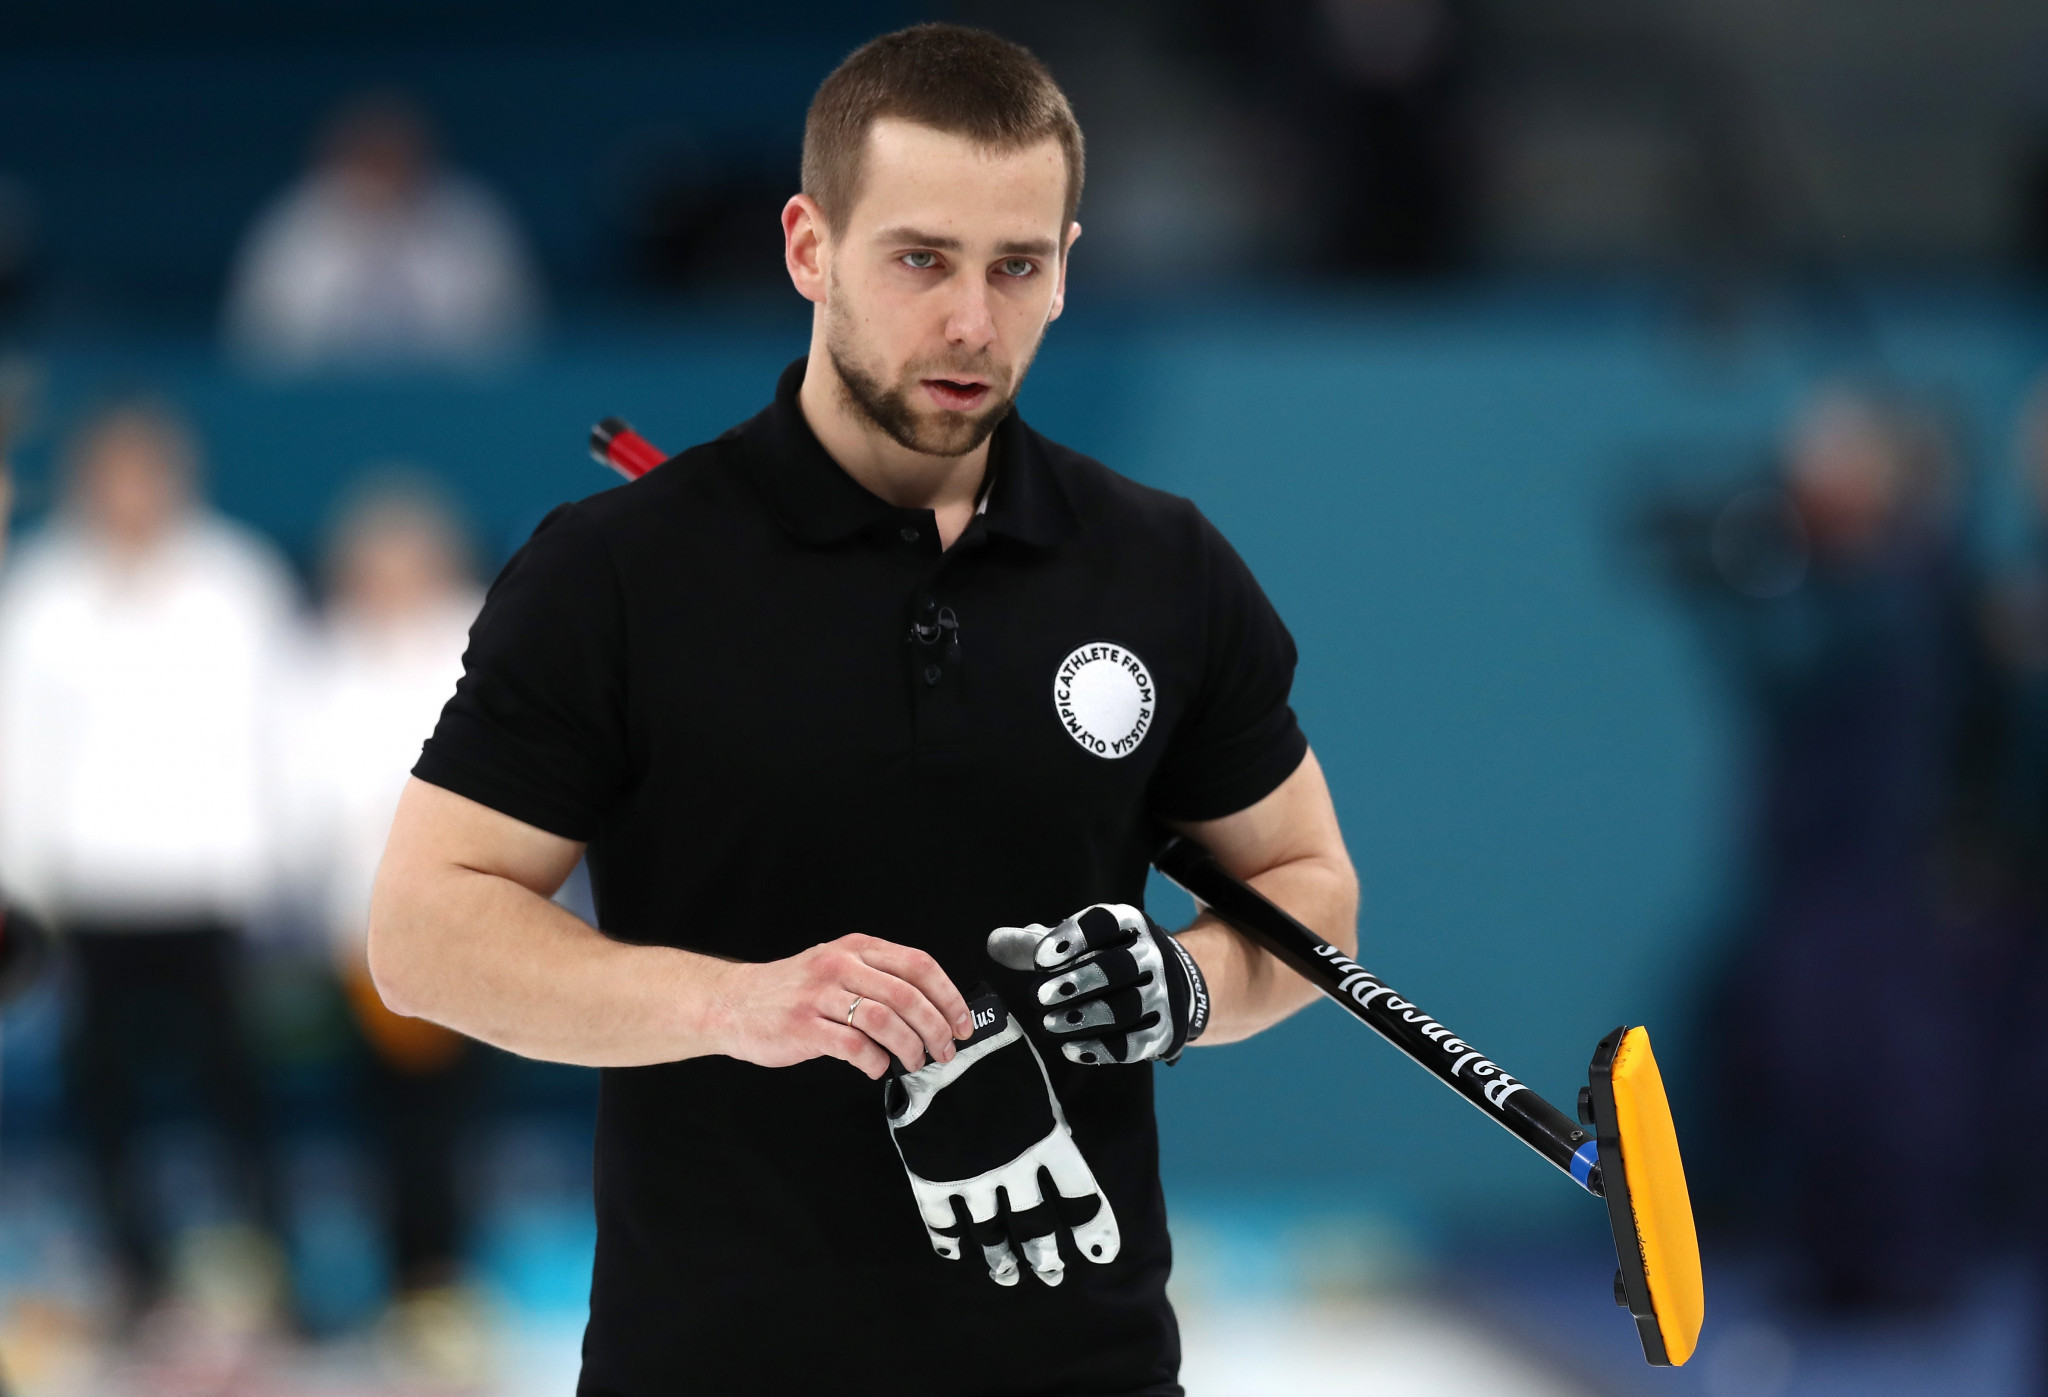 Russian curler handed four-year ban following positive test at Pyeongchang 2018